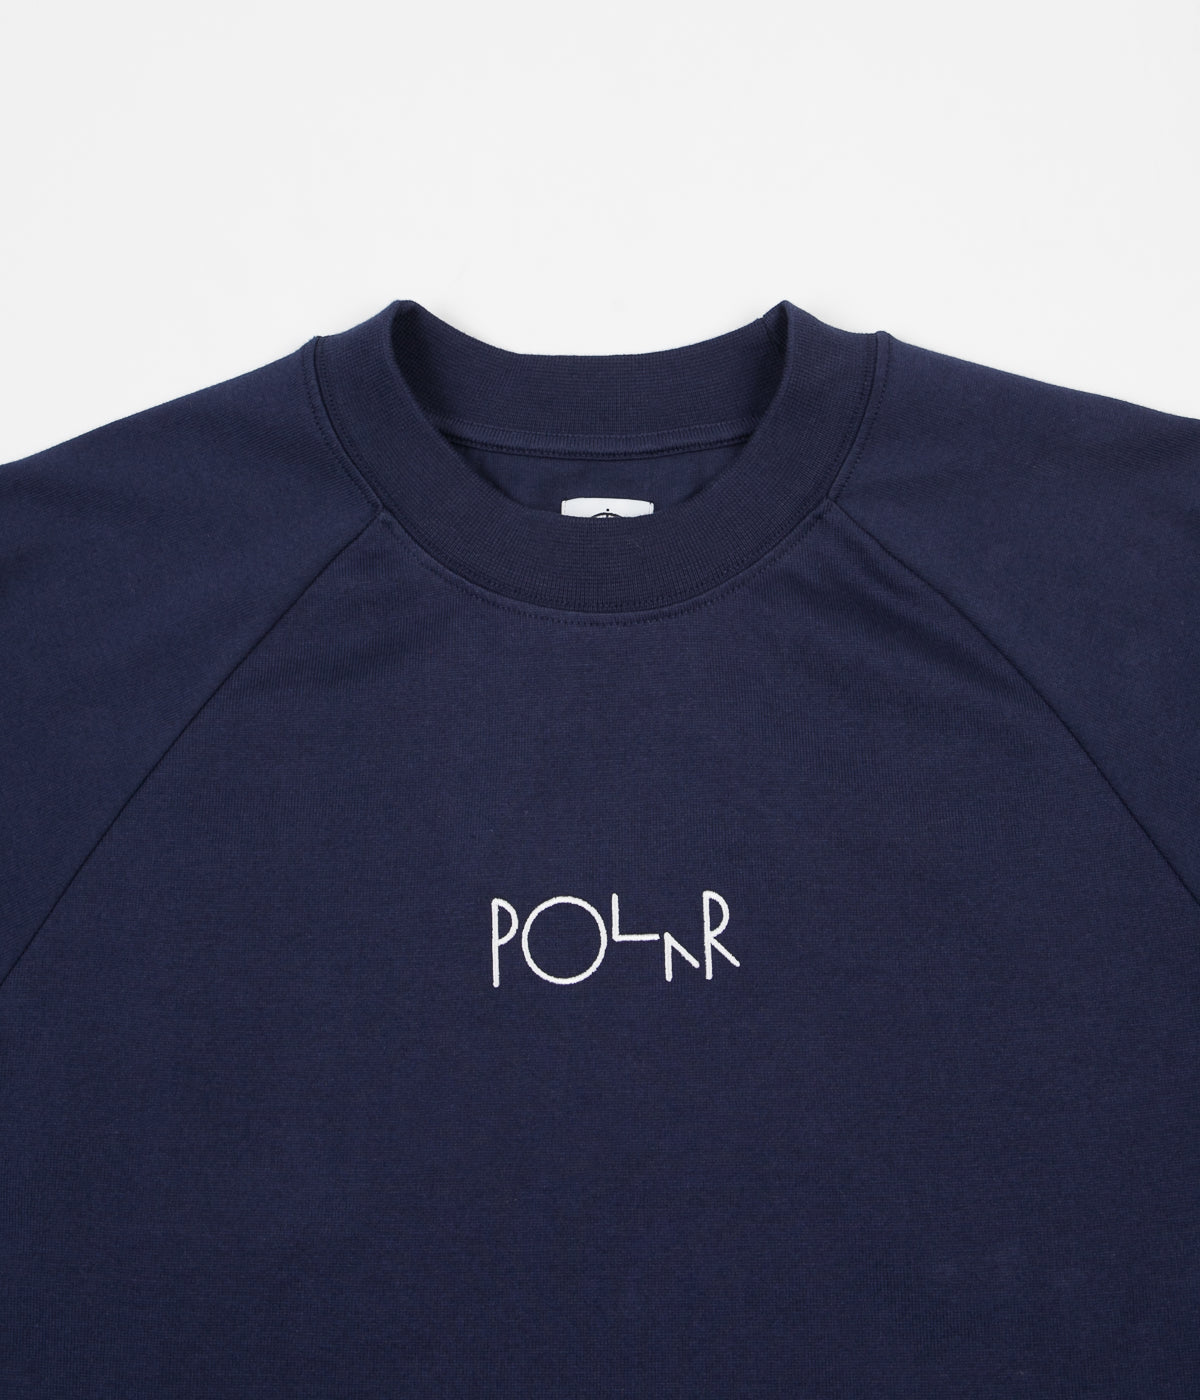 Polar Default Long Sleeve T-Shirt - Navy